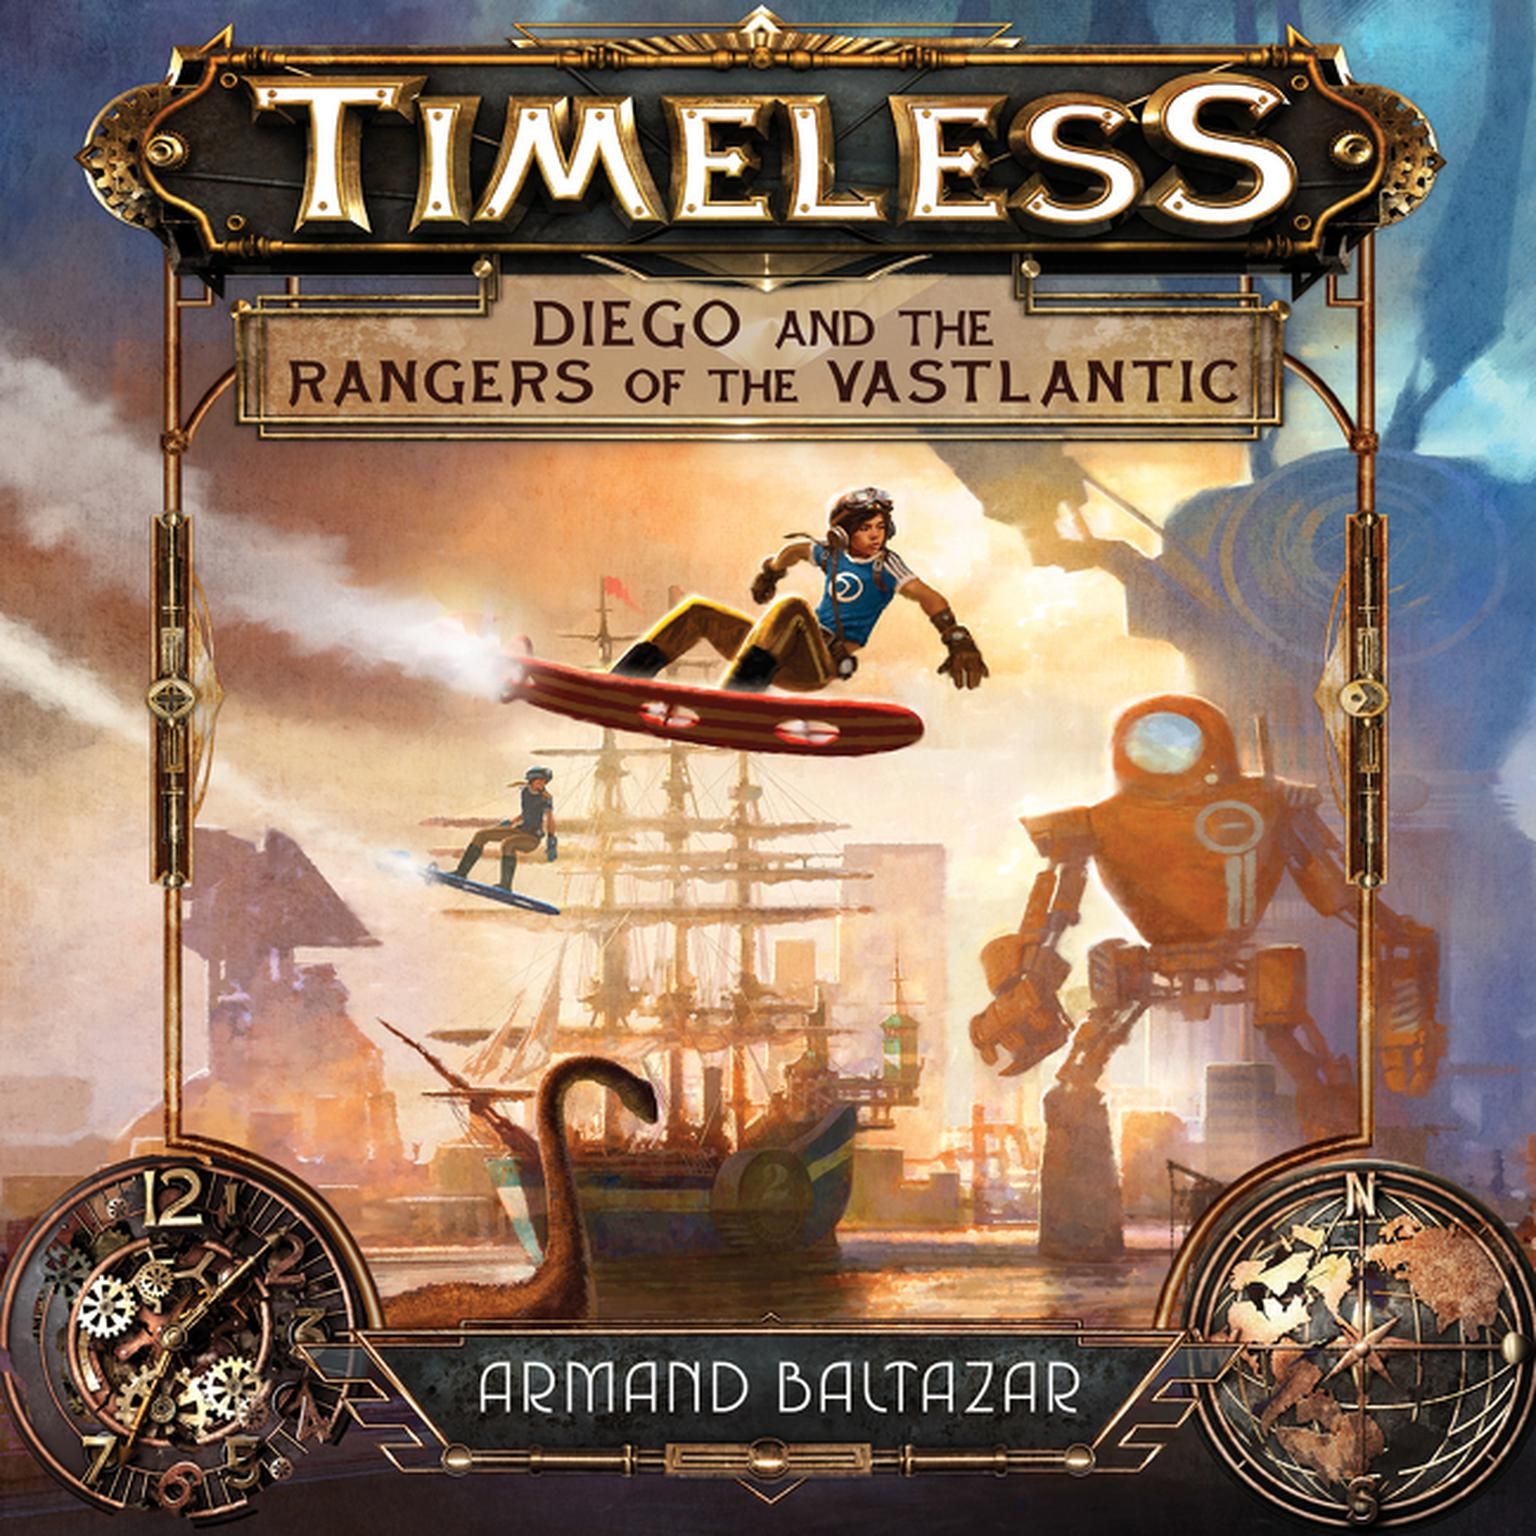 Printable Timeless: Diego and the Rangers of the Vastlantic Audiobook Cover Art